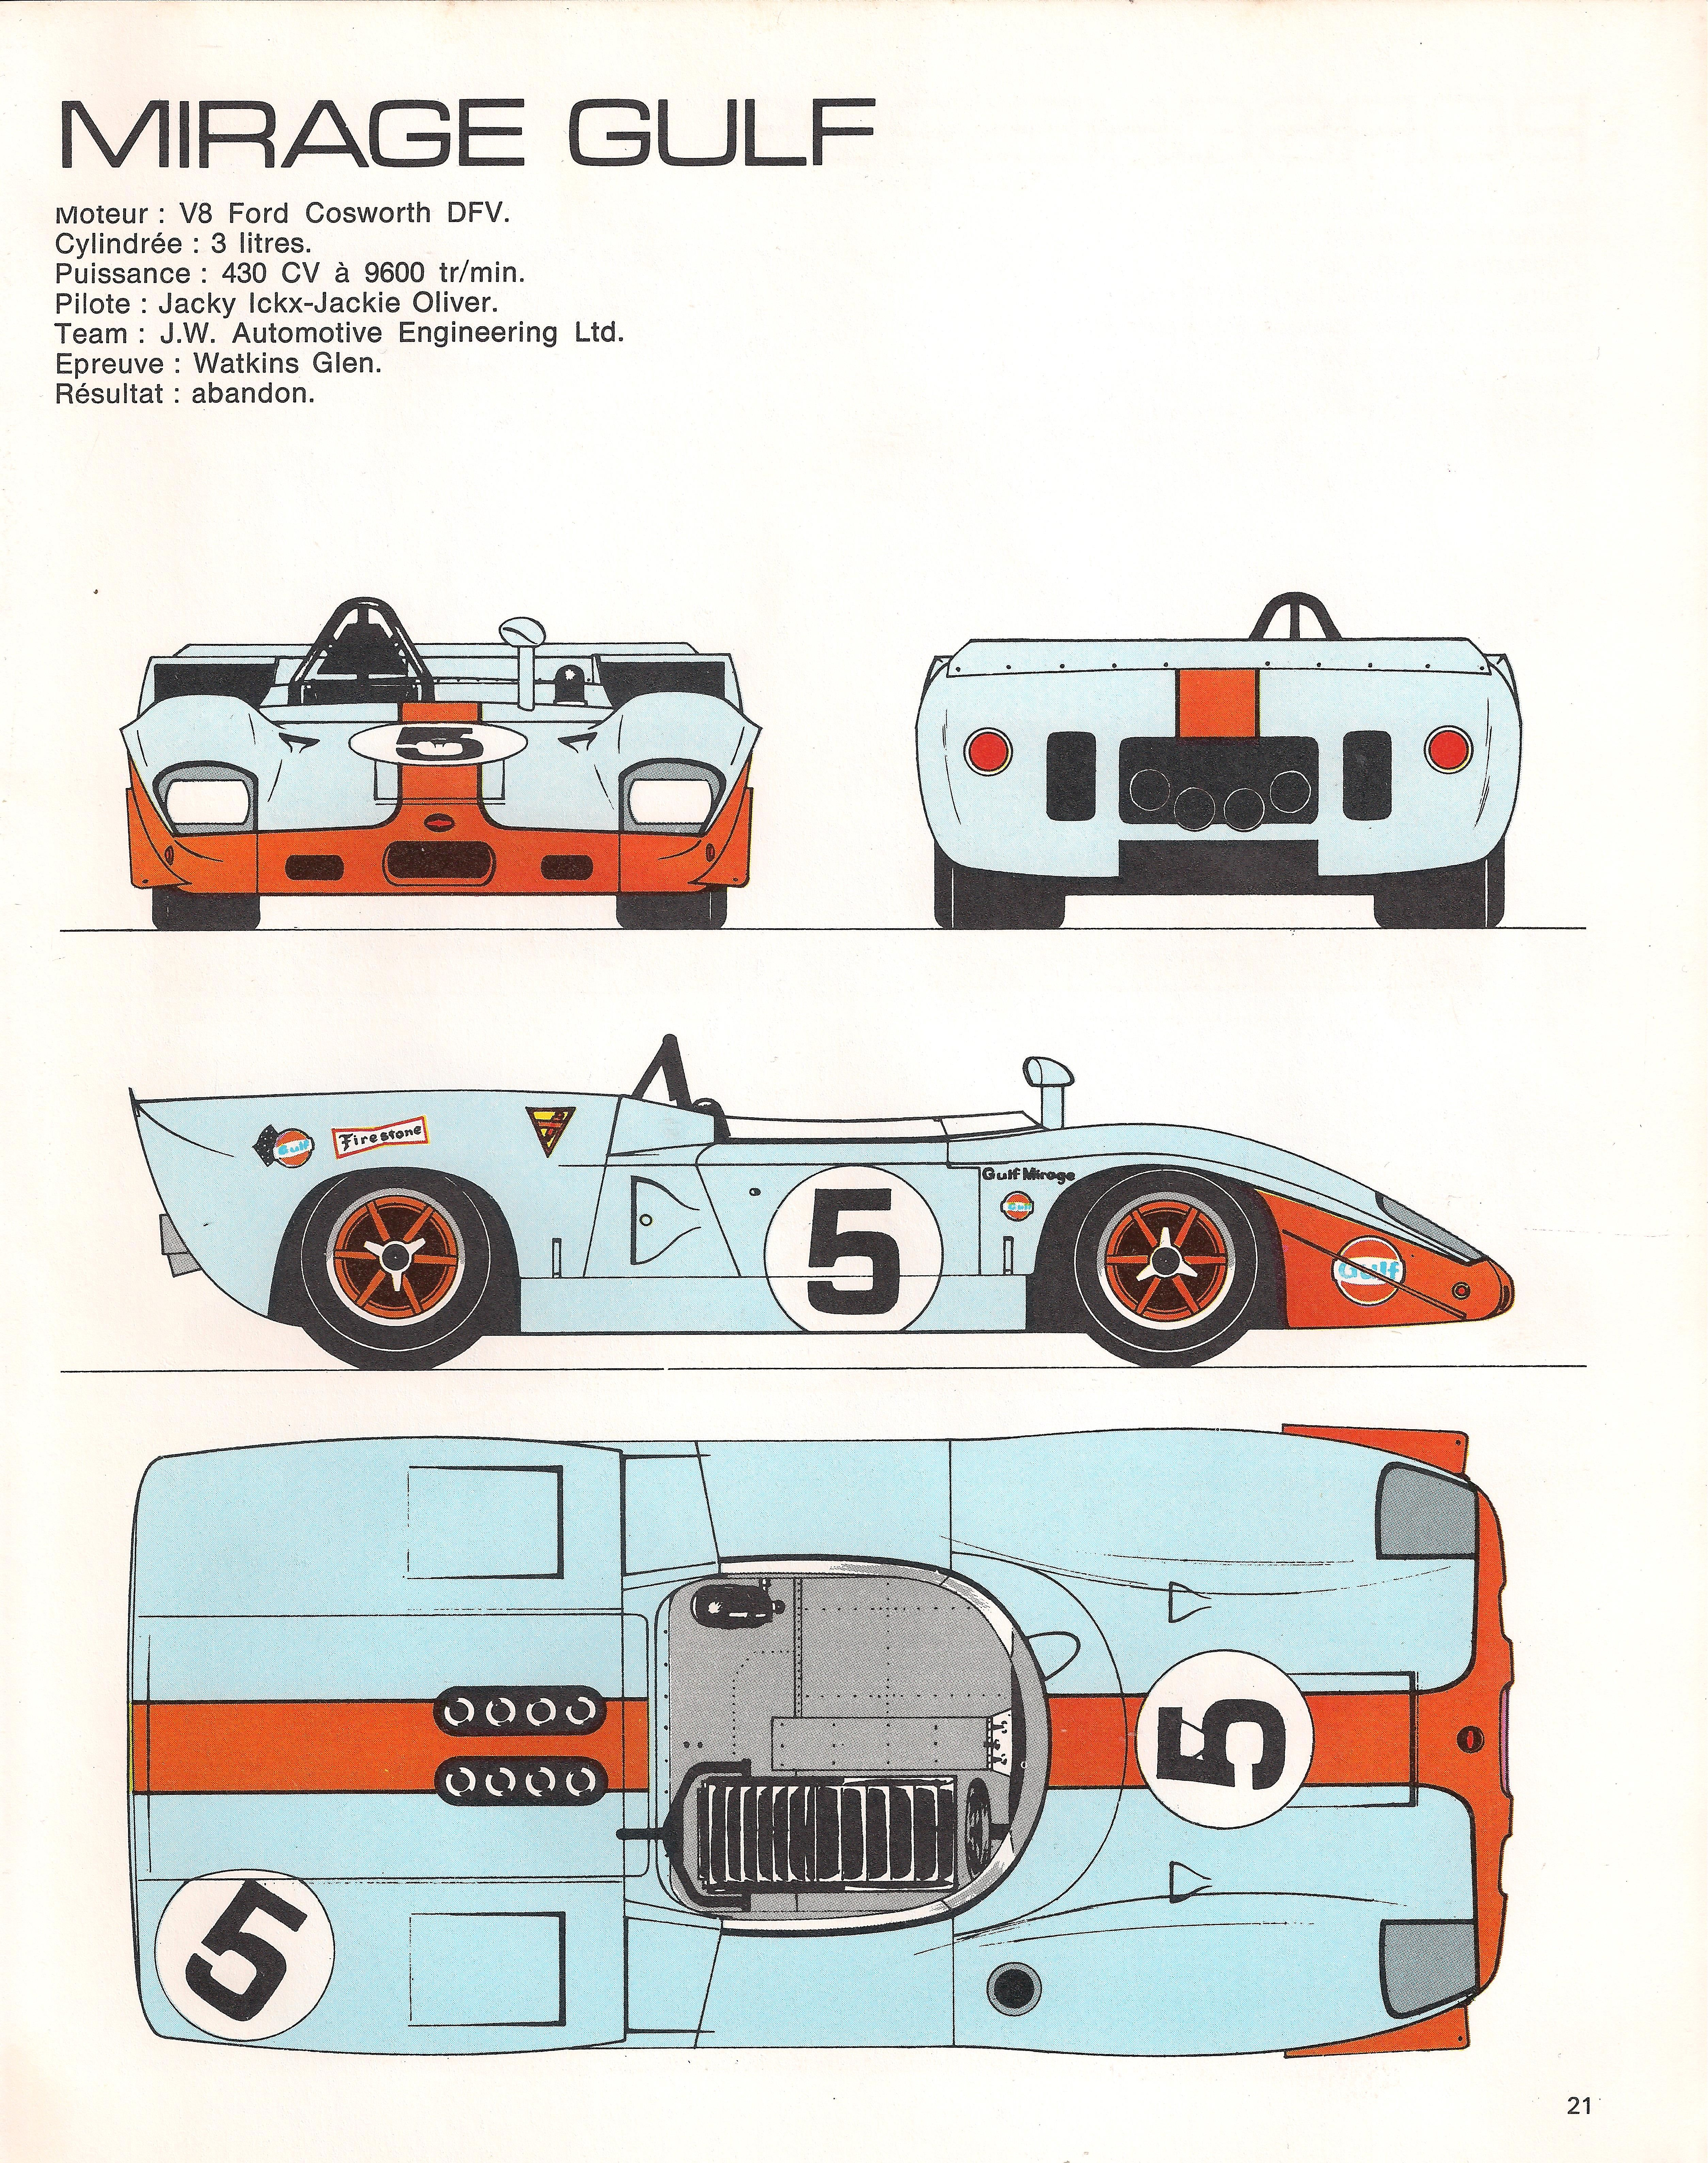 MIRAGE GULF M1 1969 RACING CARS IN PROFILE Pinterest